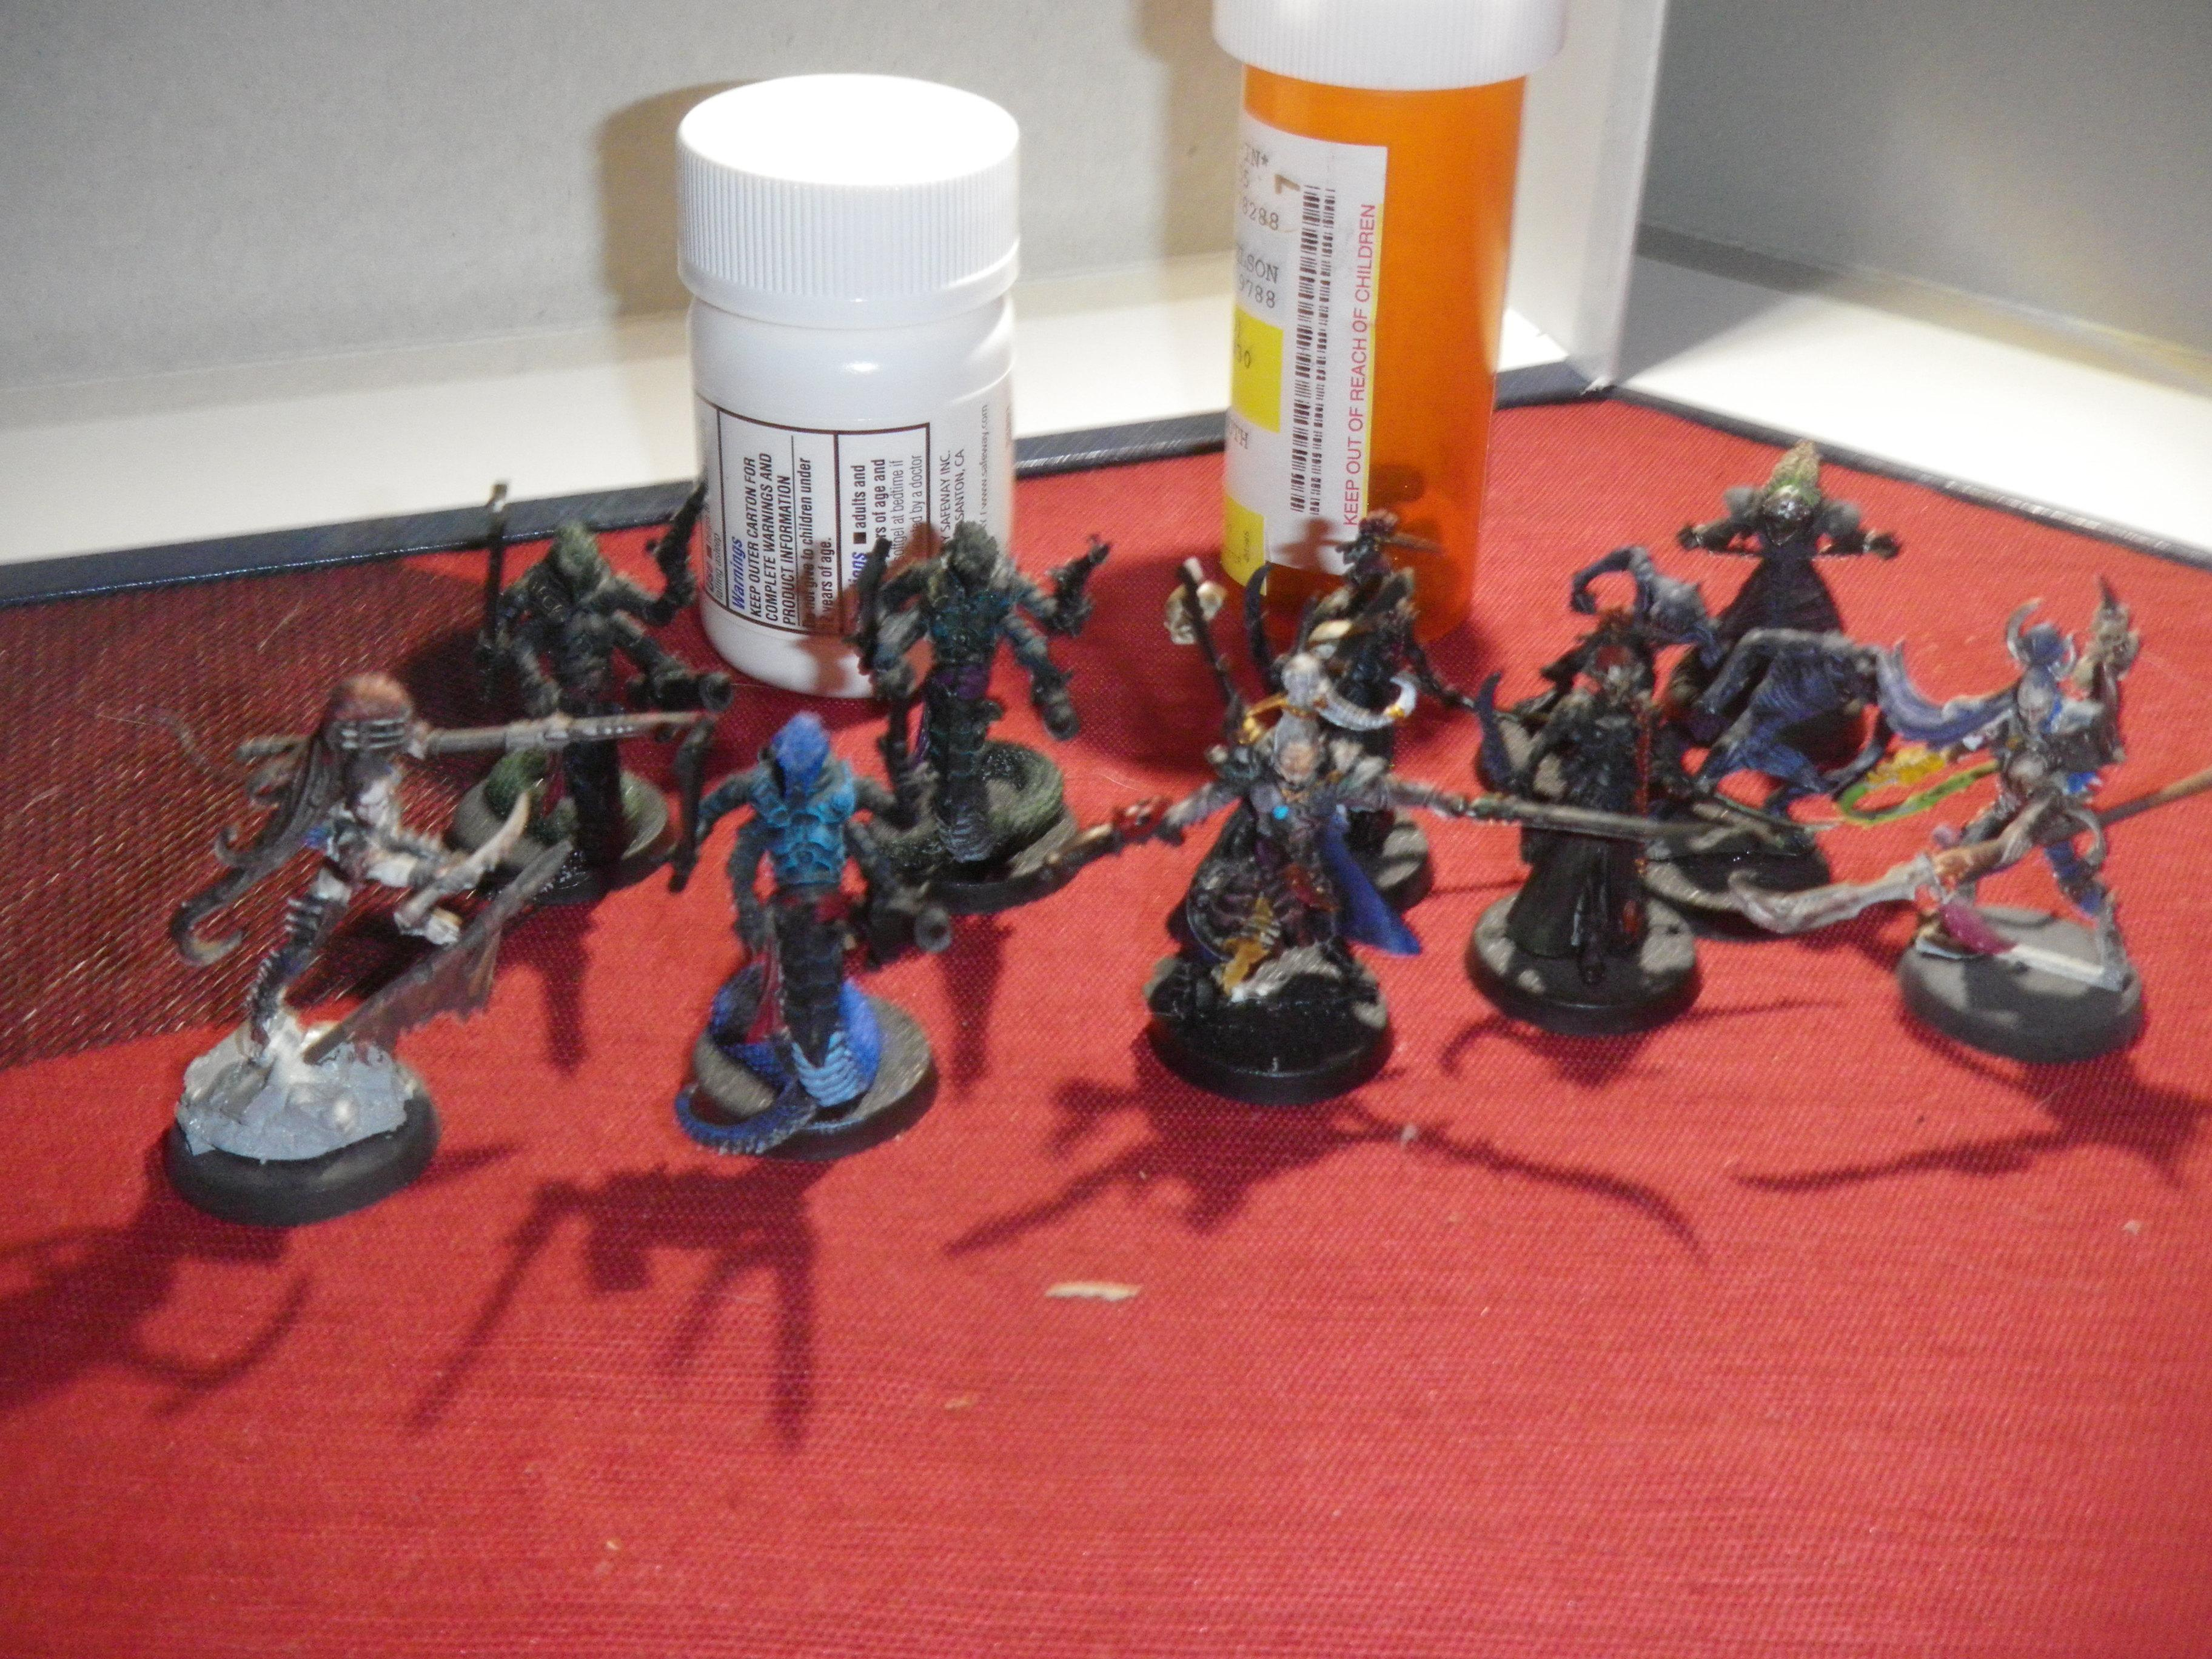 HQ. Self made Archon...other name HQ I need to make. Though I have two Succubus and three Haemoncules